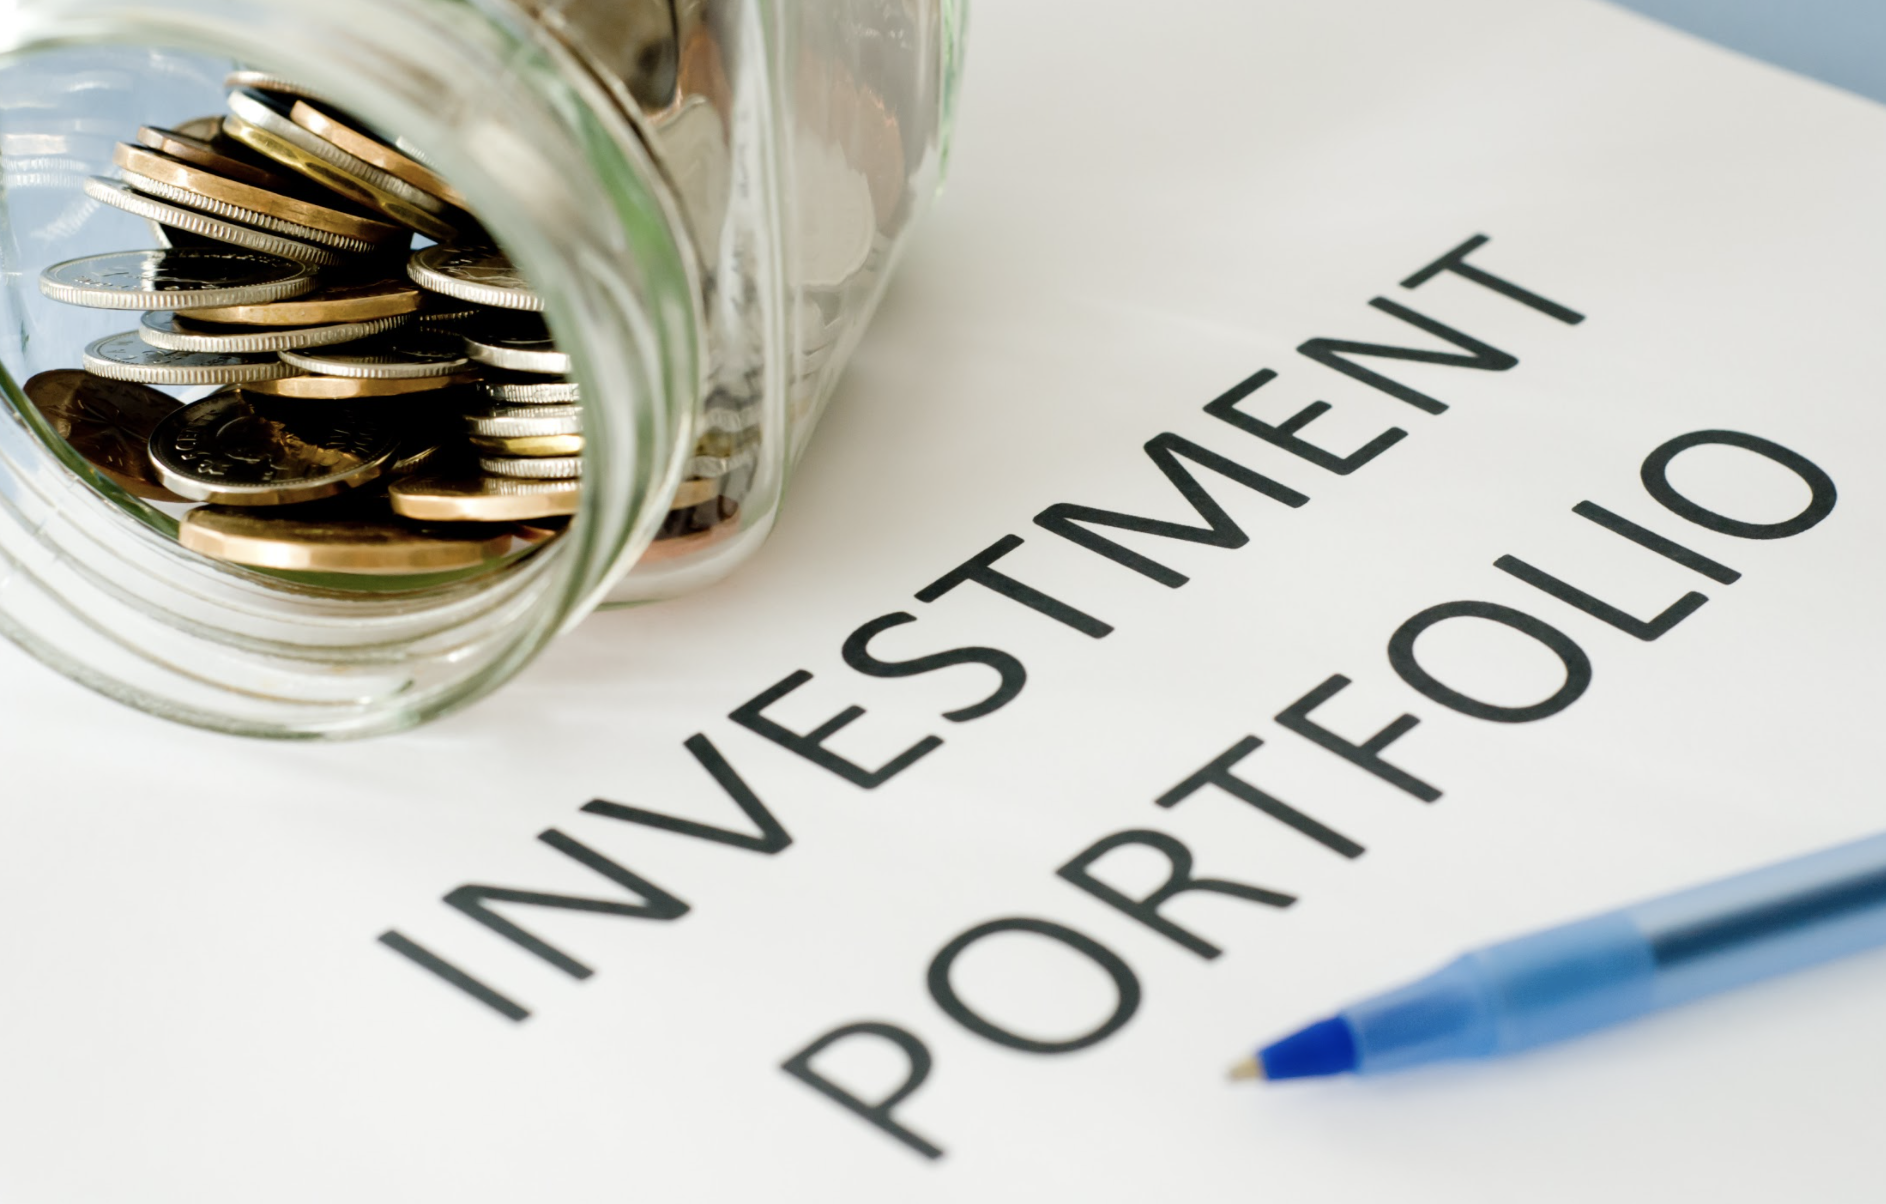 6 Easy Investment Ideas to Assist Beginners in 2021